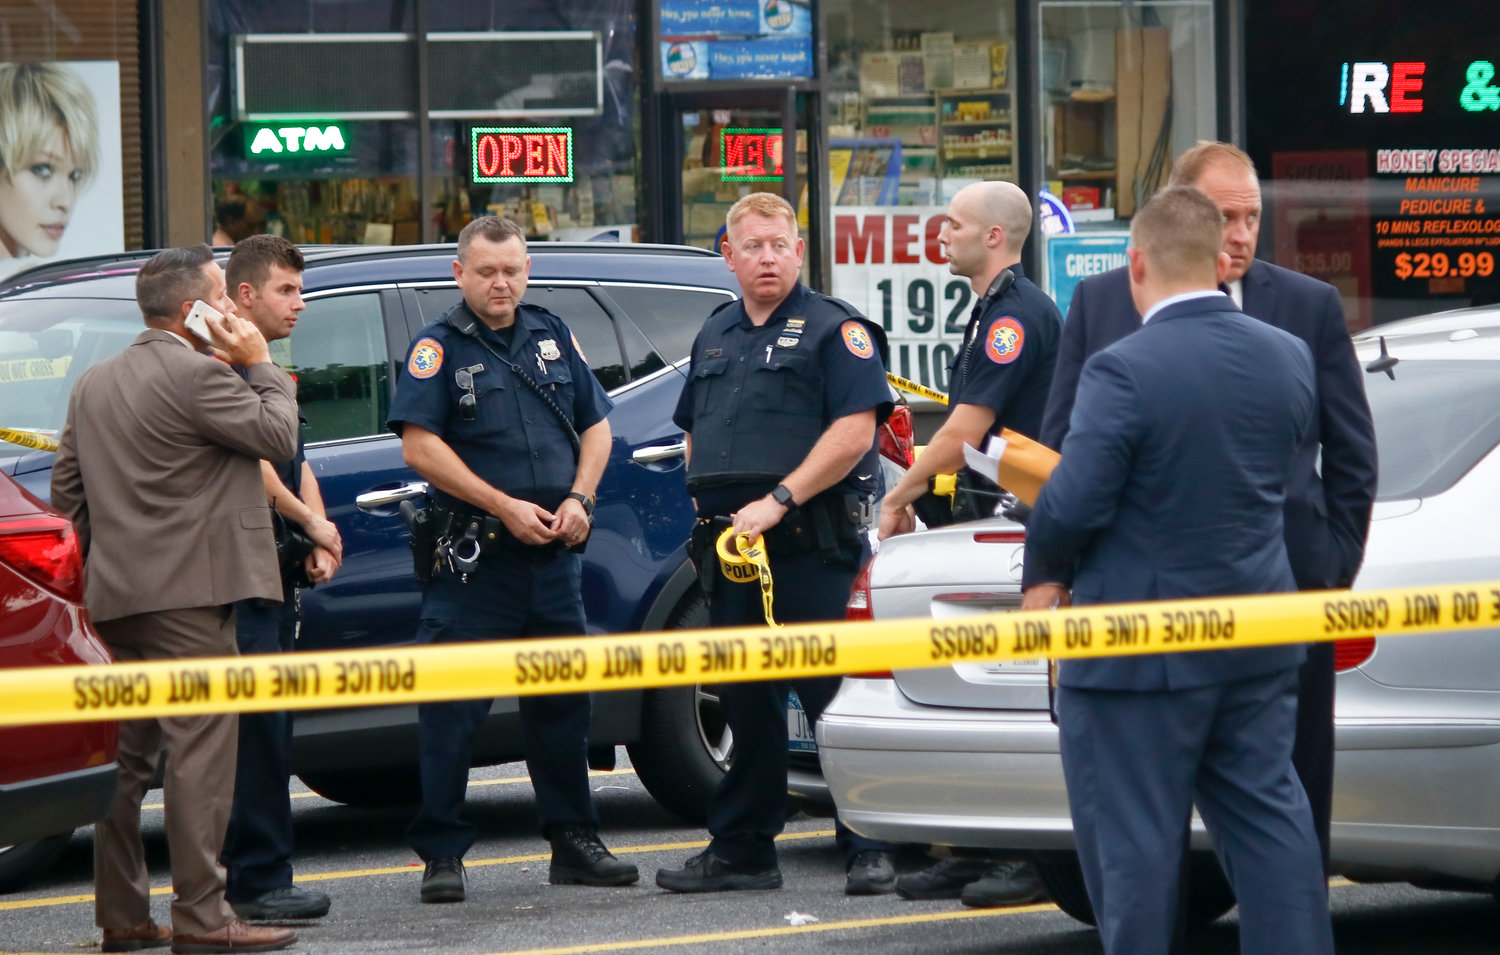 Police surrounded the crime scene after a brawl at an Oceanside strip mall left 16-year-old Khaseen Morris dead.